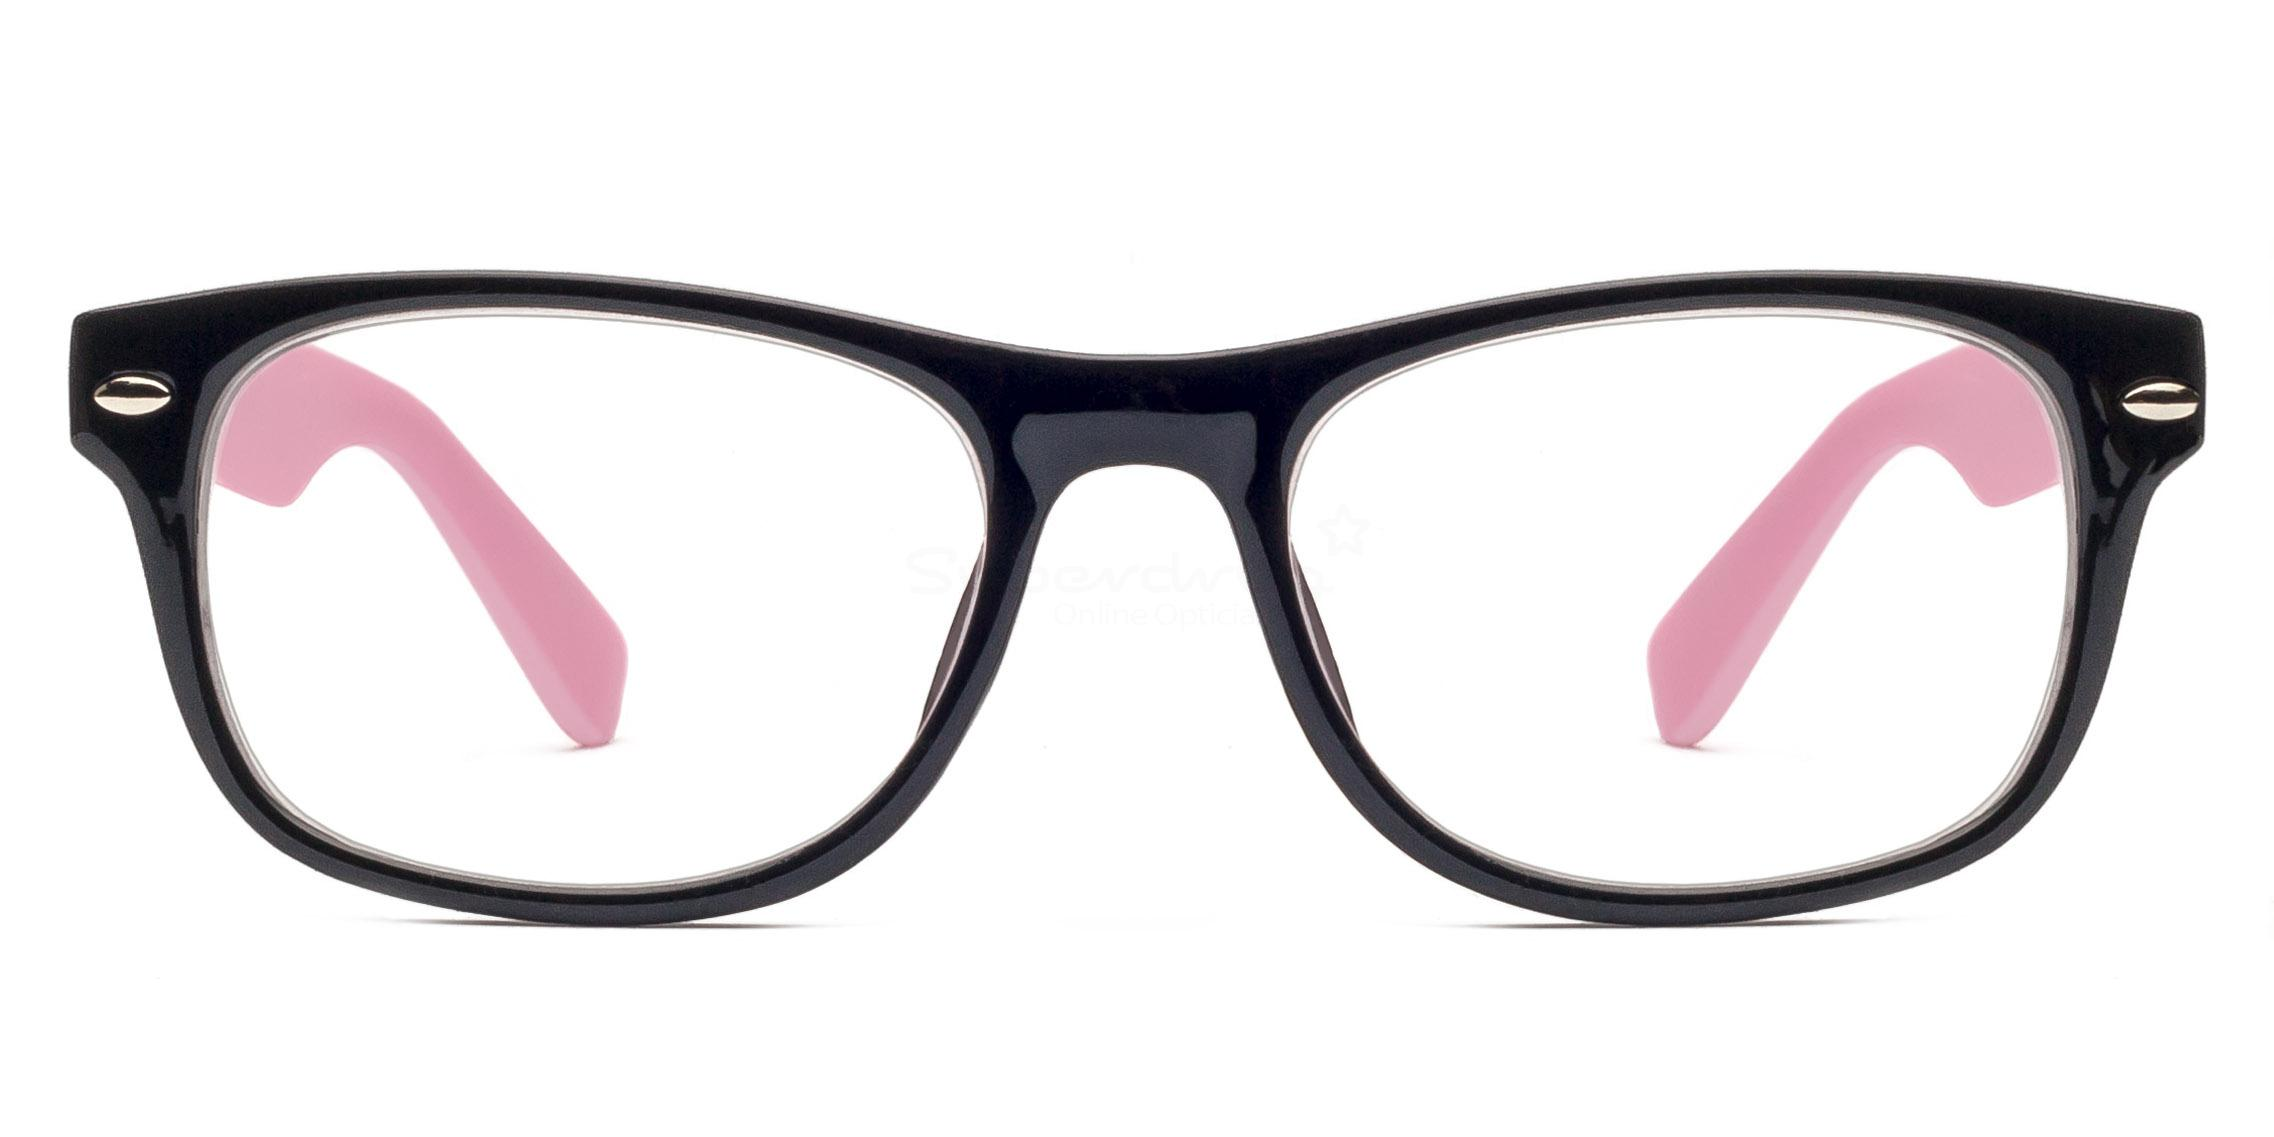 C86 P2383 - Black and Pink Glasses, Helium